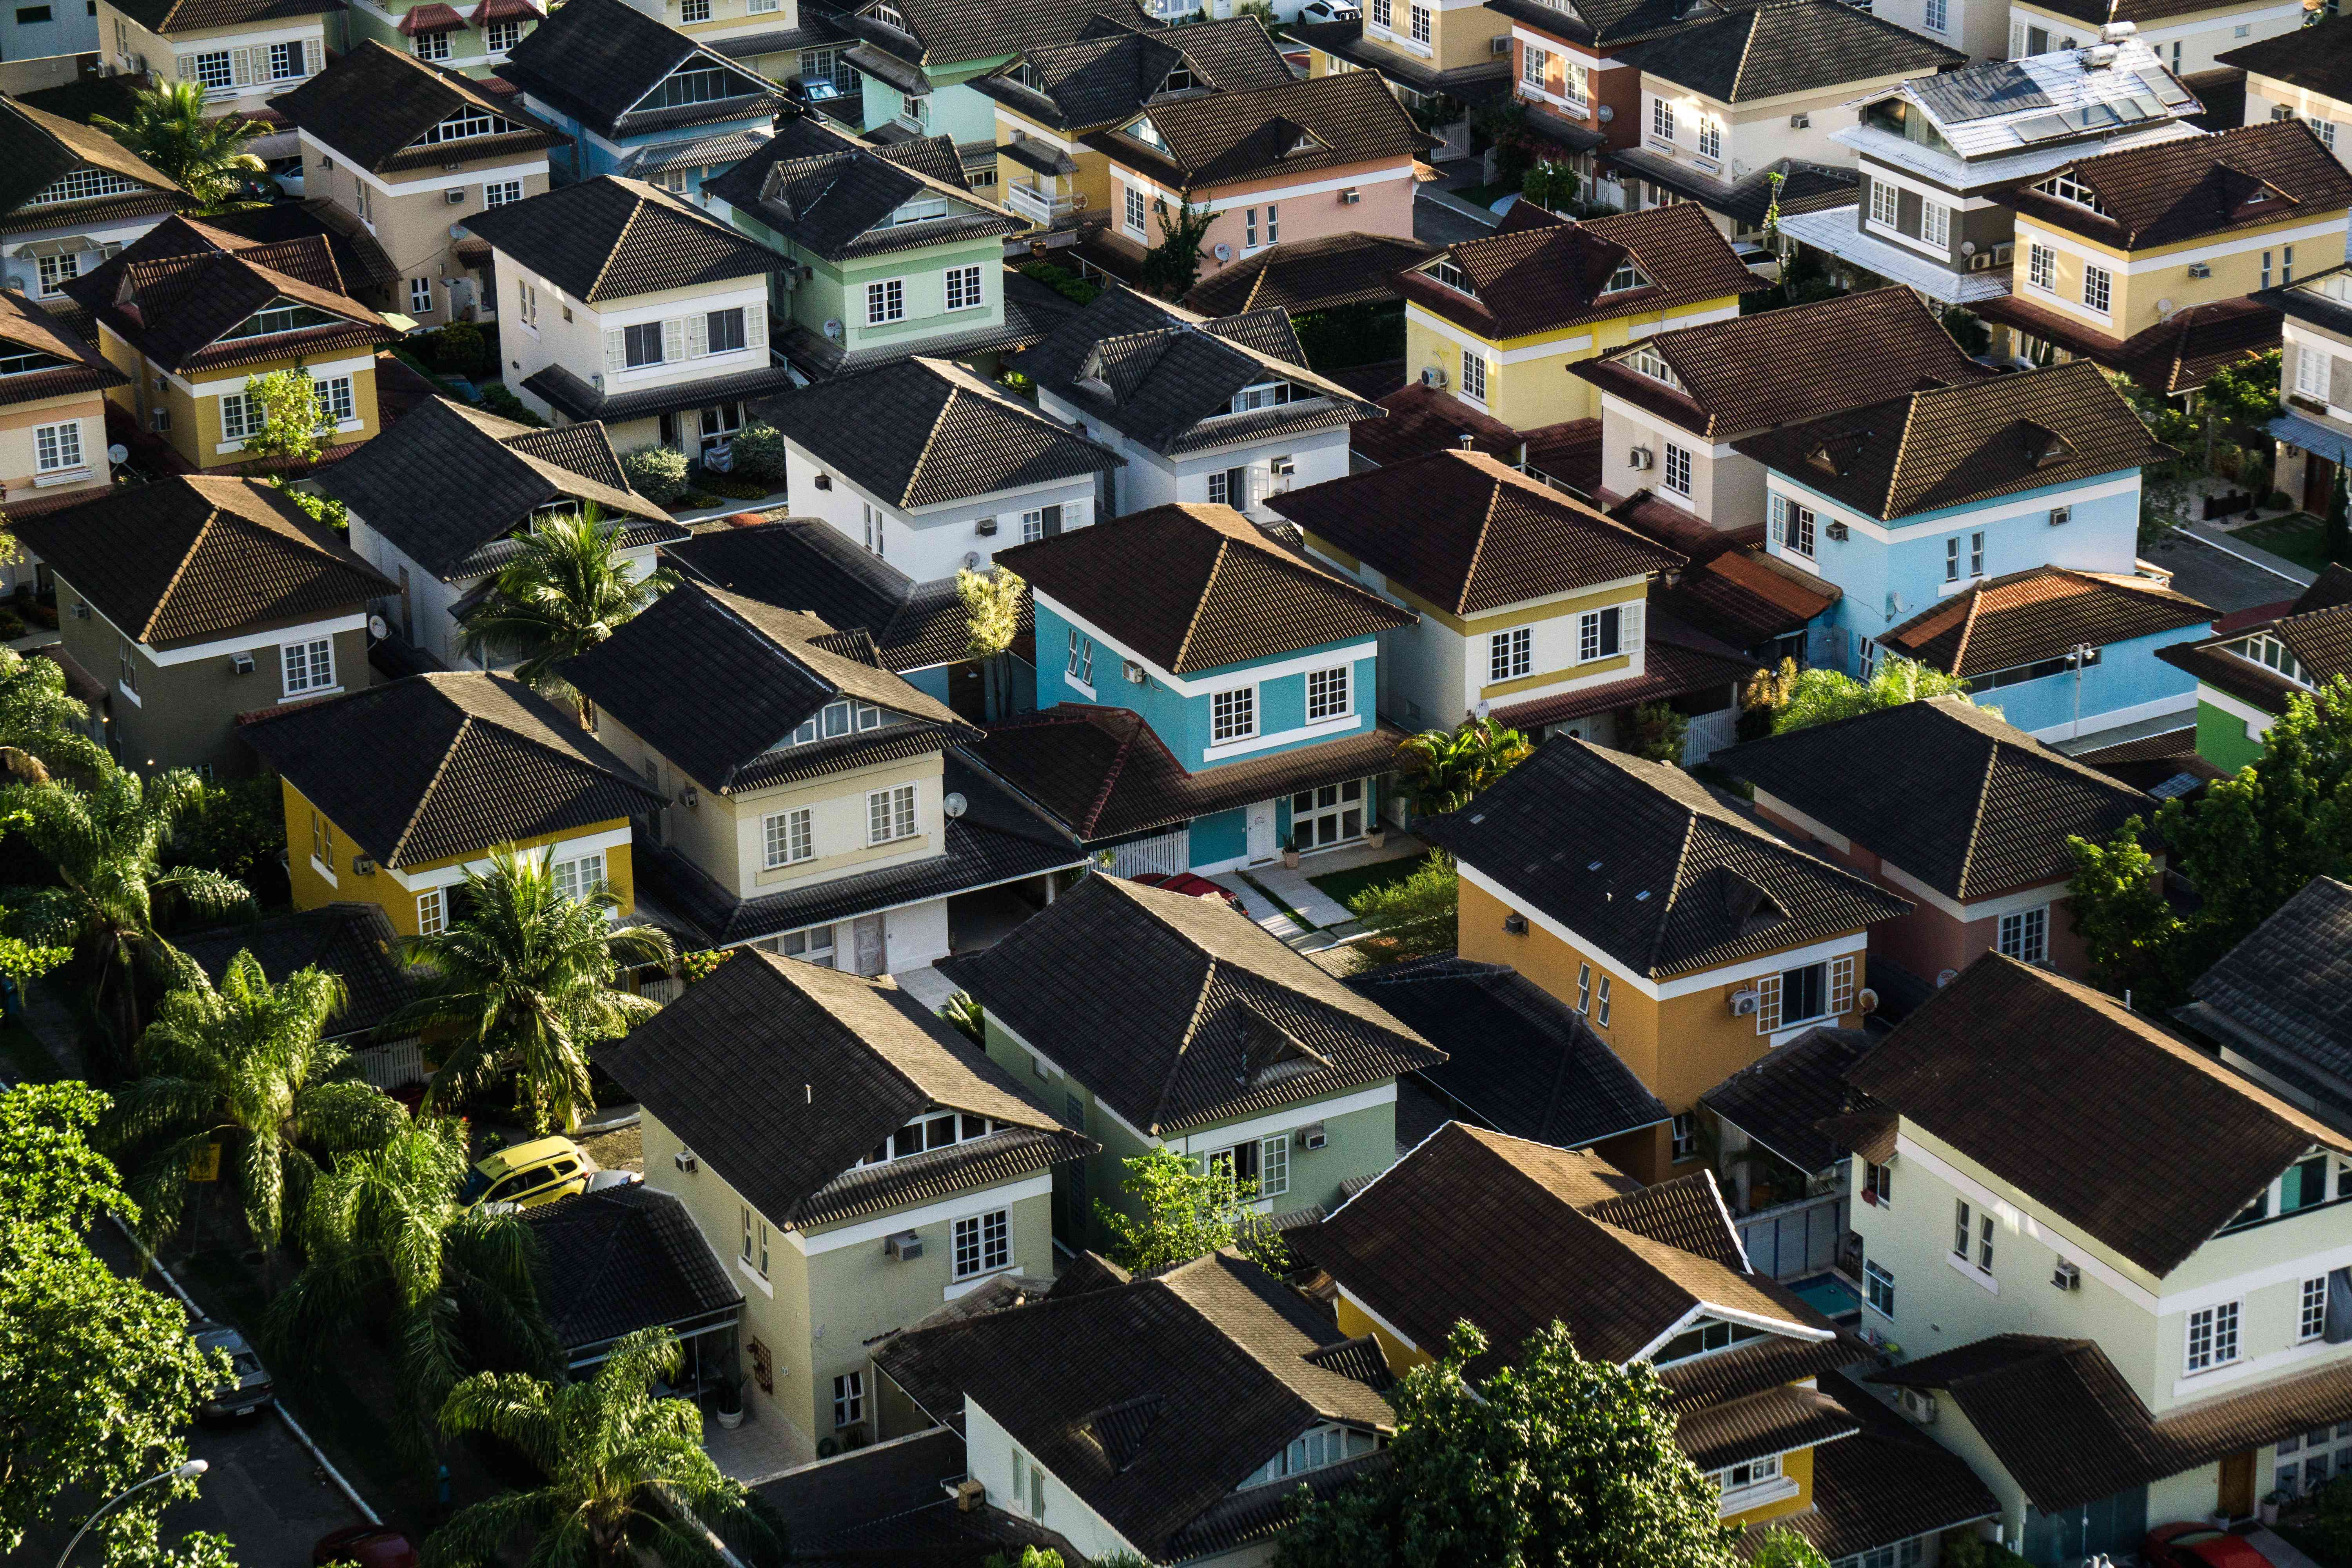 an aerial view of a colorful neighborhood of homes